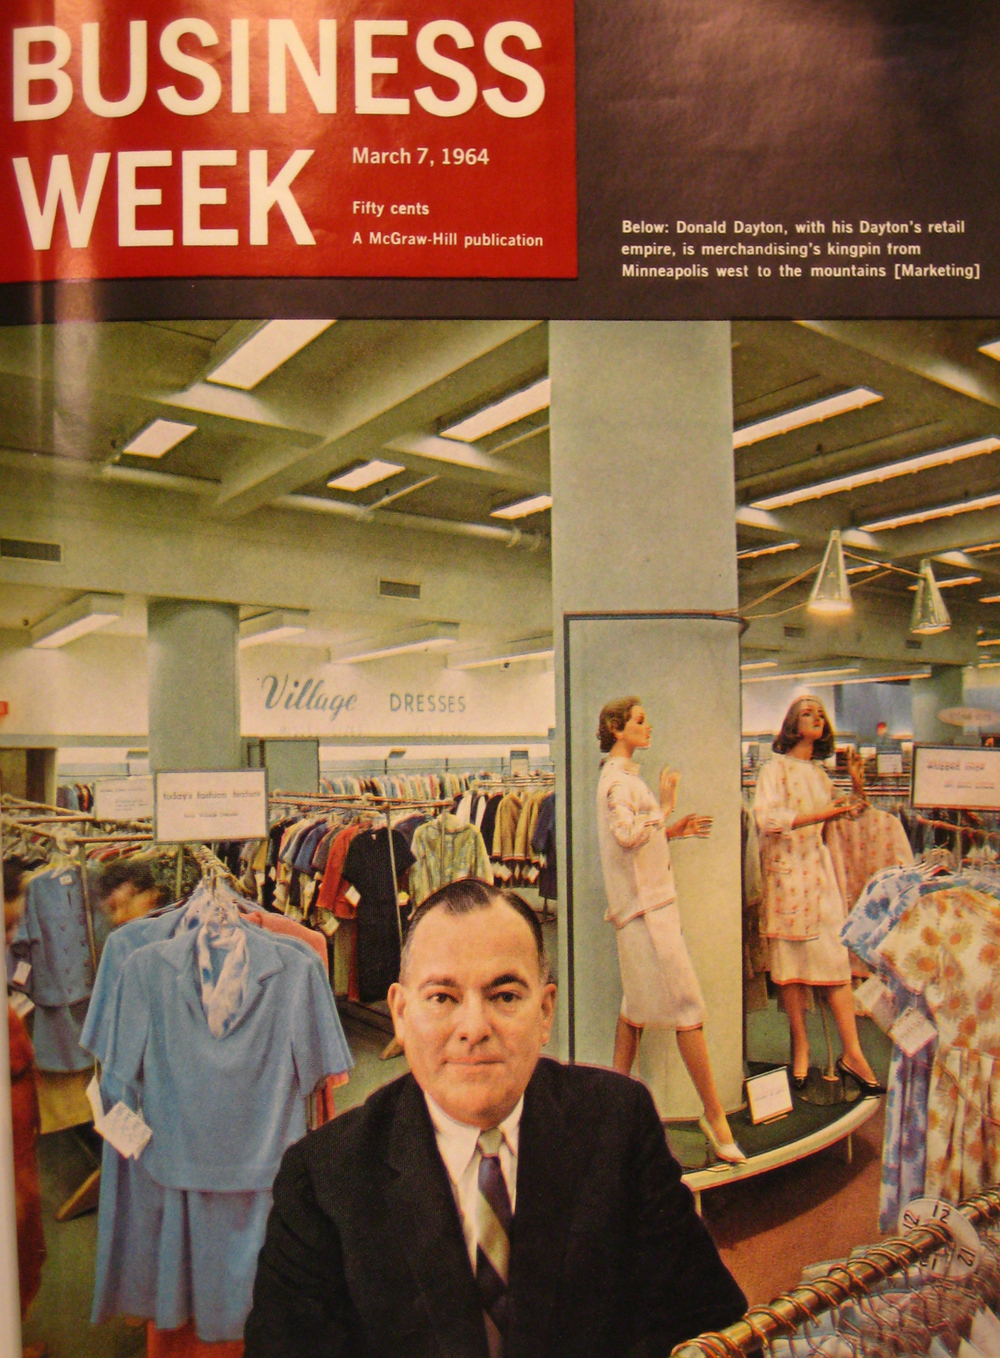 Donald Dayton on the cover of 'Business Week,' in front of Dayton's department store in Minneapolis.  (Dayton-Hudson Collection, Target Corporation Brooklyn Park, MN)